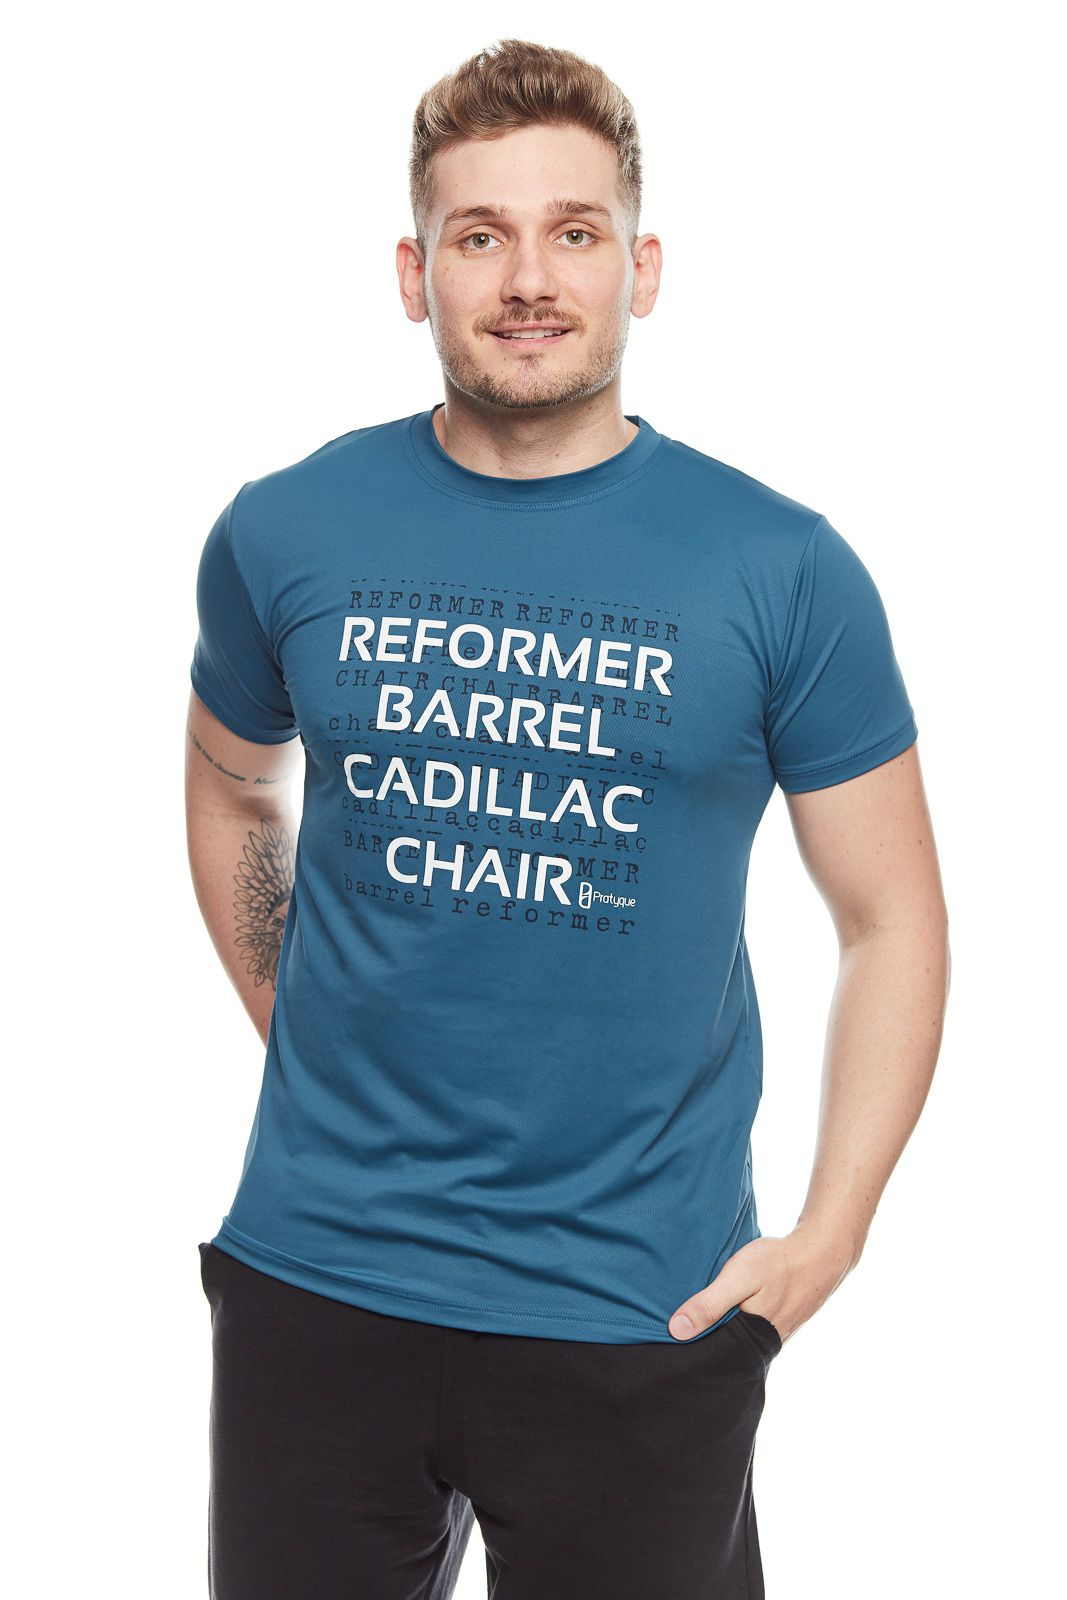 CAMISETA LISBOA - 'REFORMER BARREL CADILLAC CHAIR'